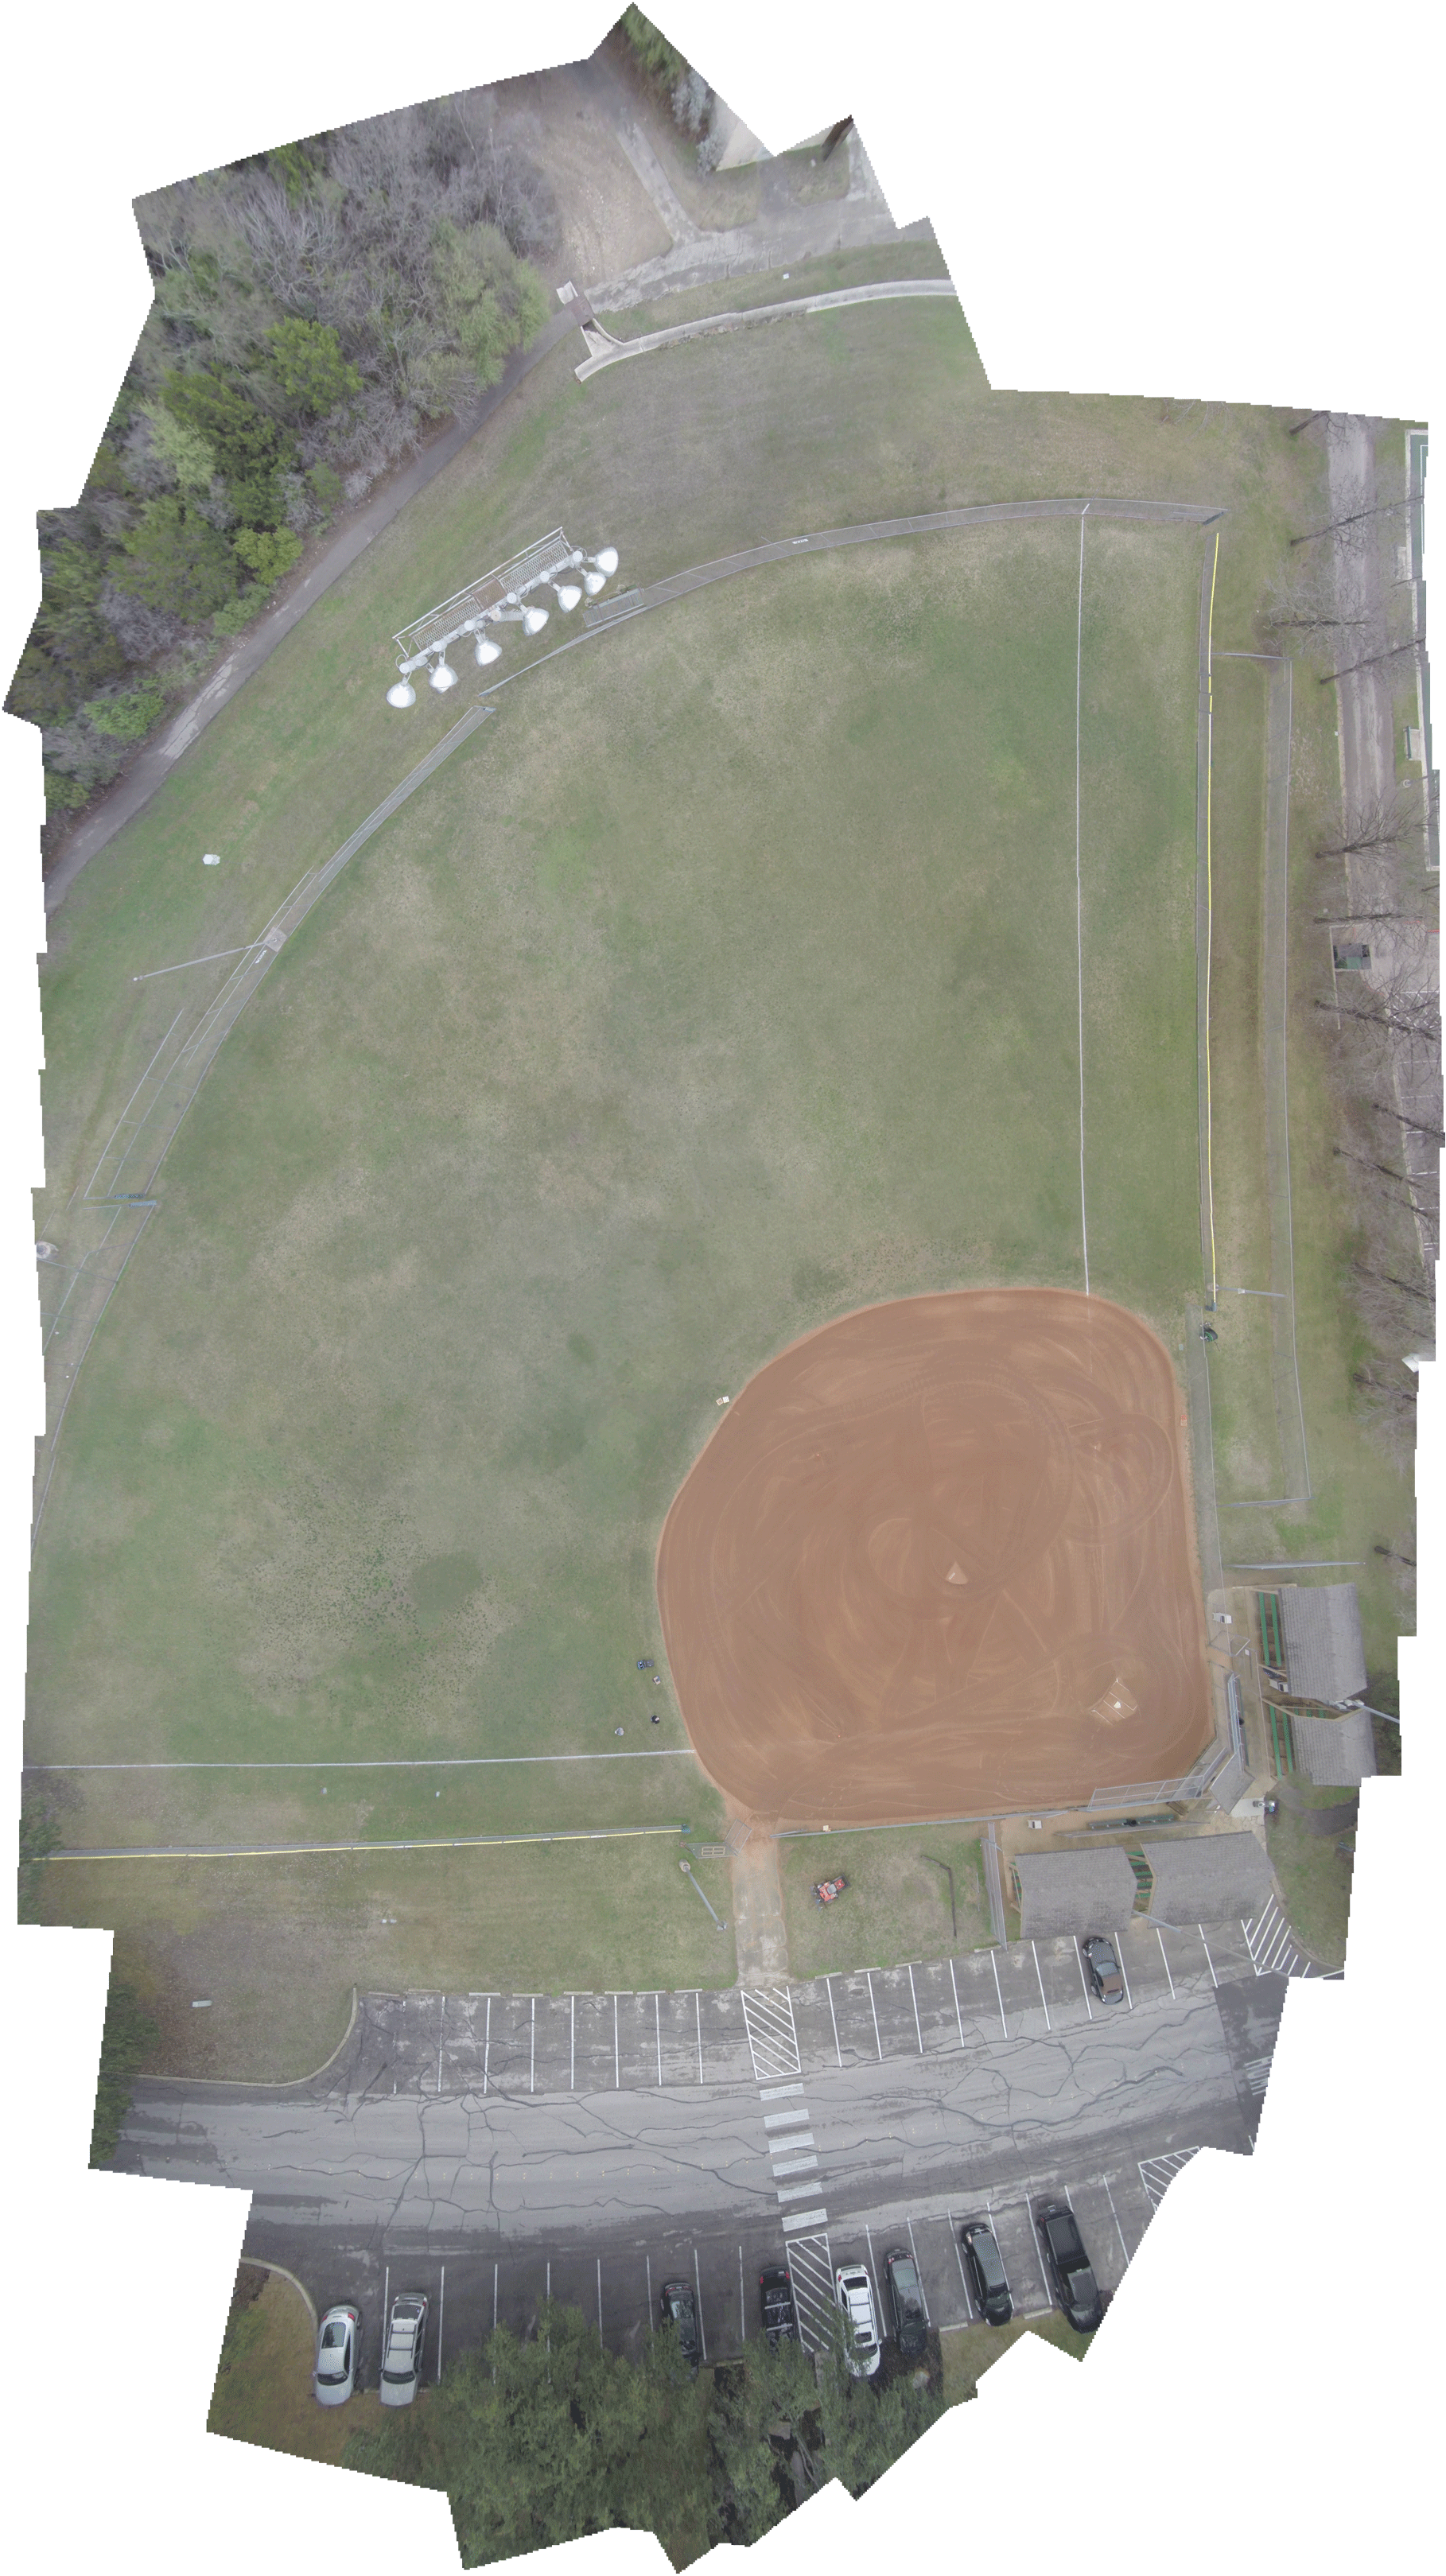 Softball field mapping 4kstills